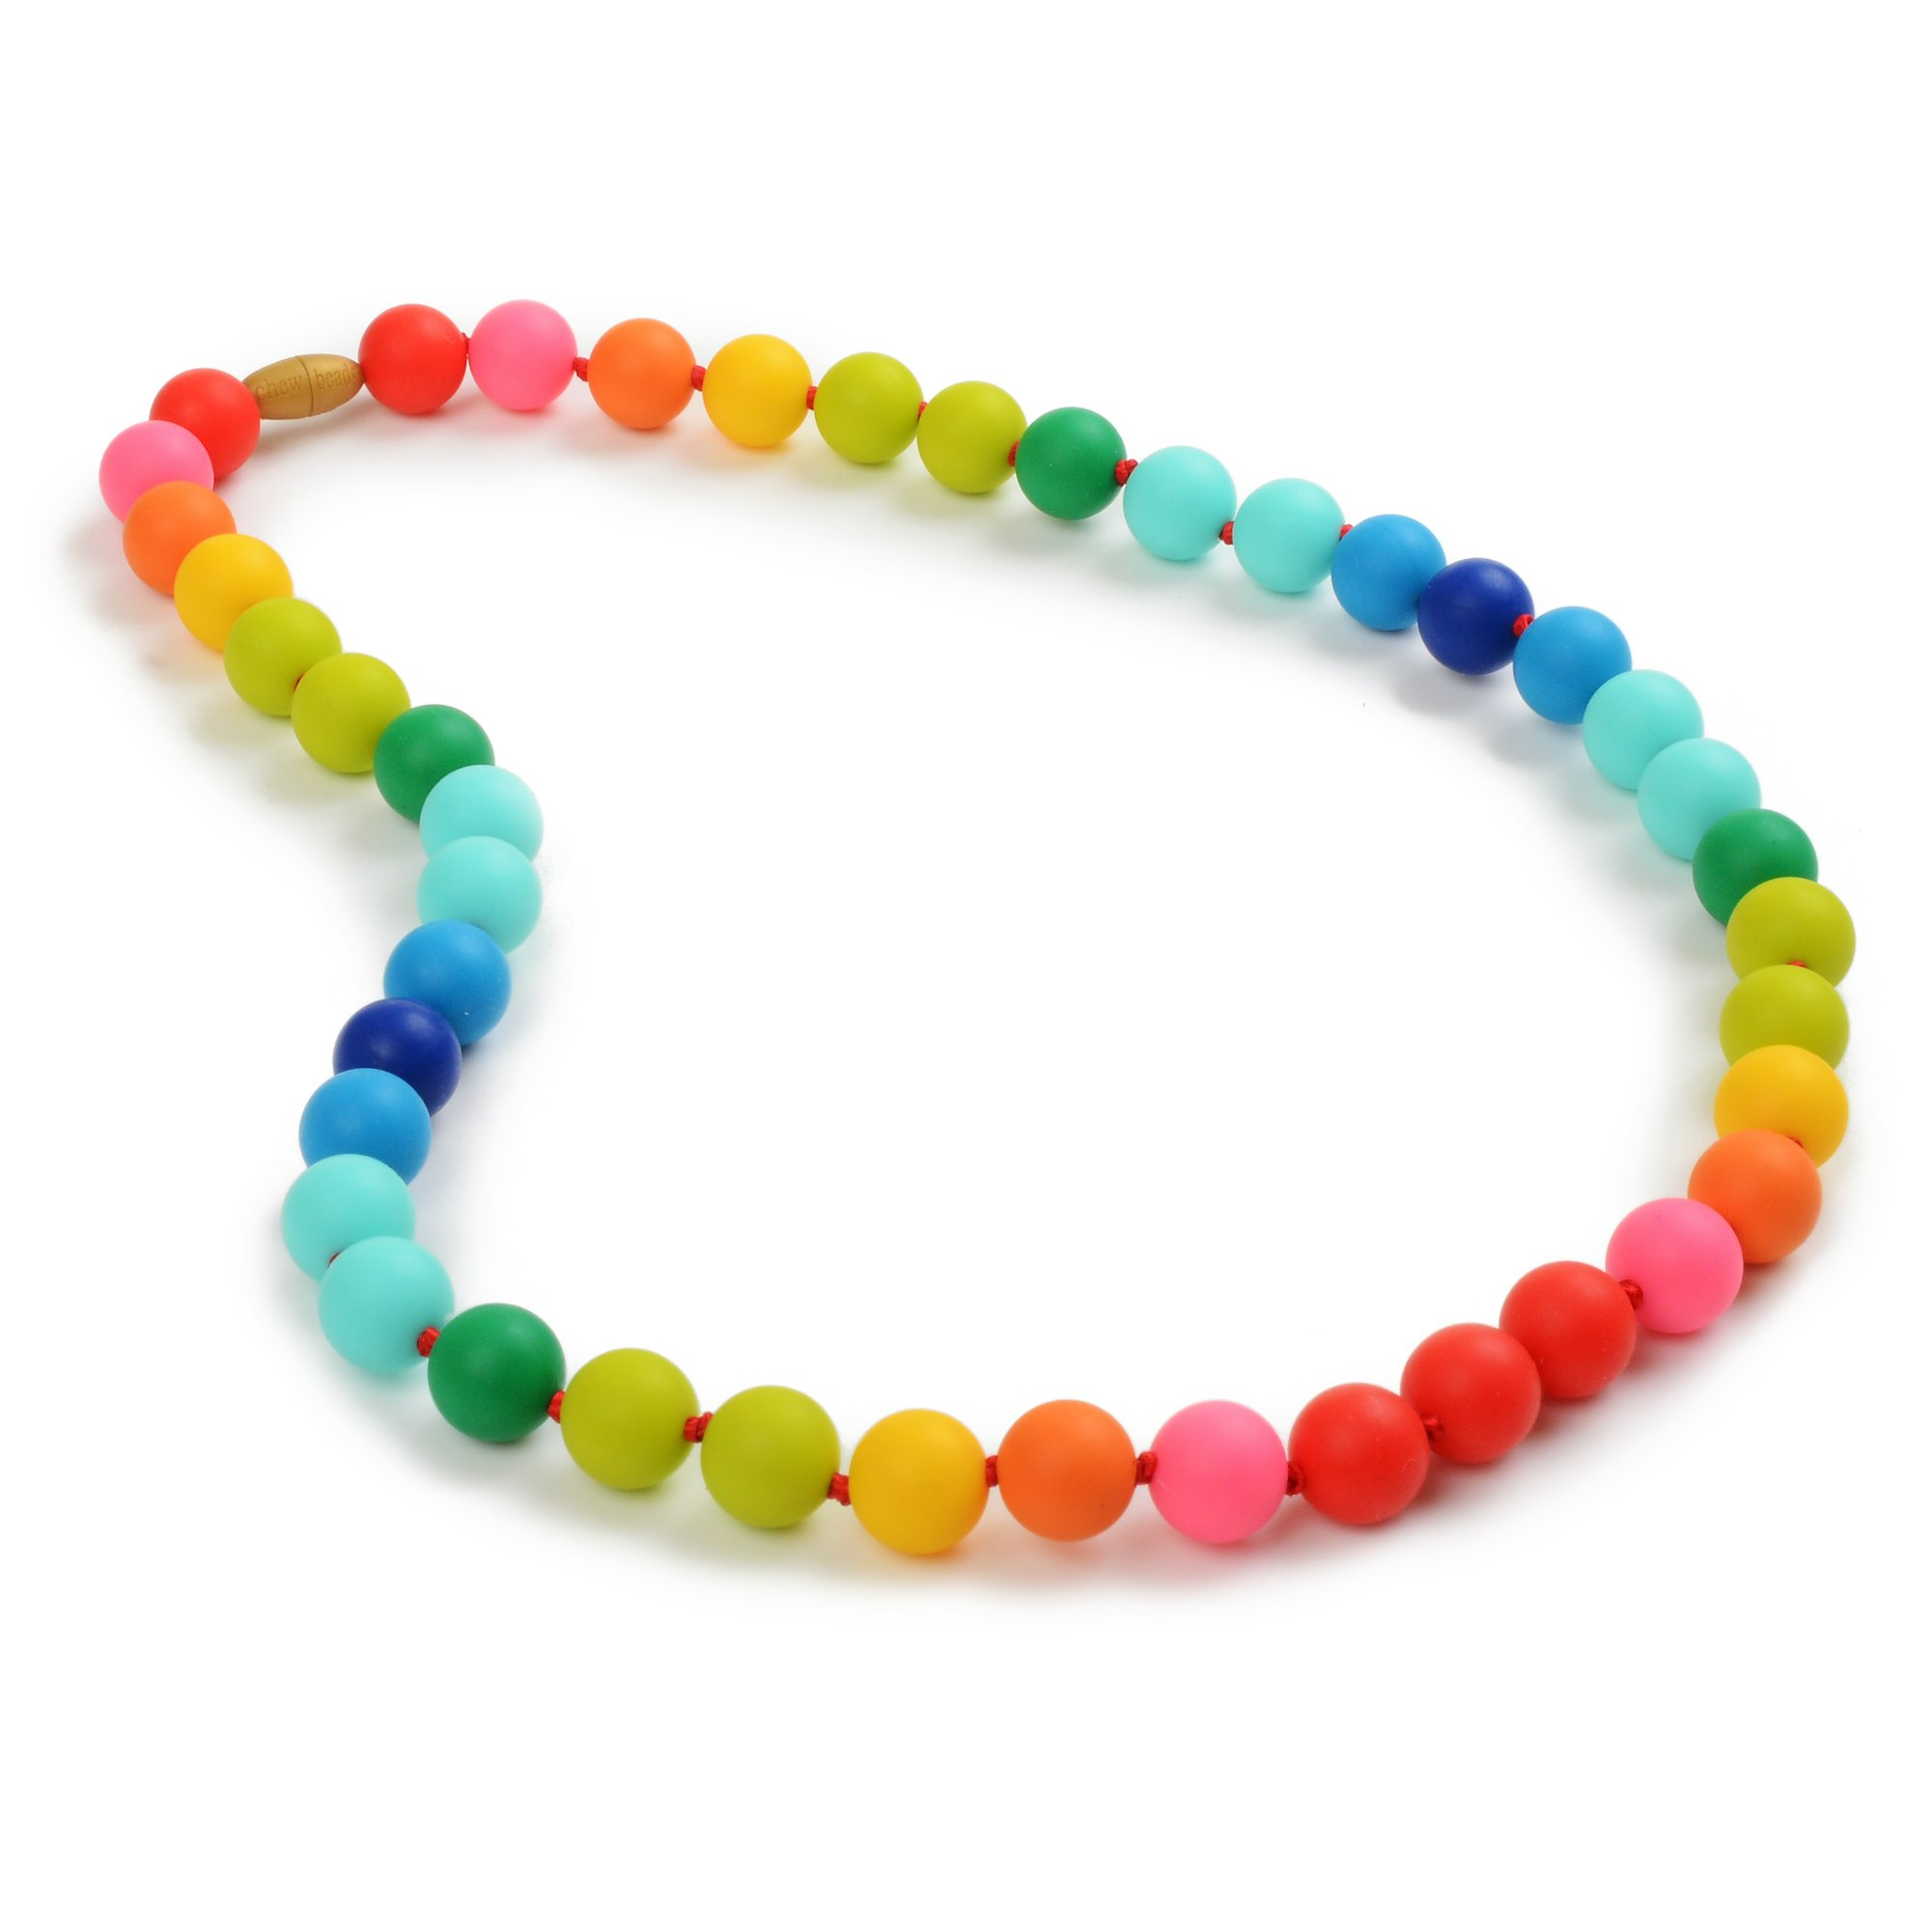 Chewbeads Christopher Teething Necklace (Rainbow) - Original Fashionable Teething Jewelry for Mom. 100% Medical Grade Silicone Safe for Teething Babies and Toddlers. BPA Free